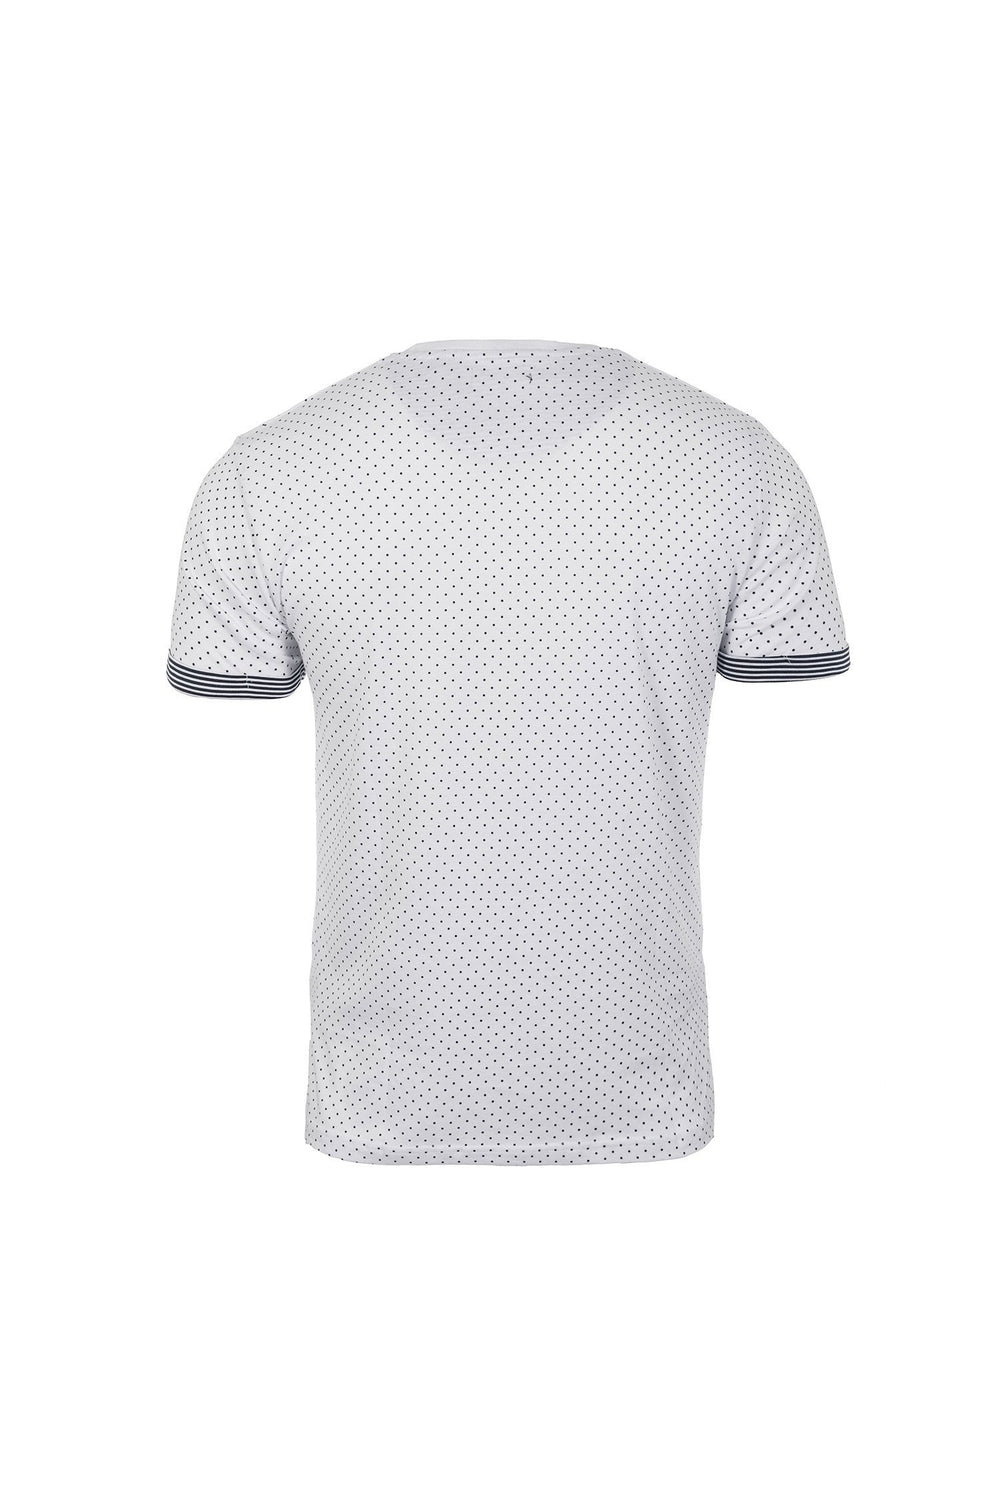 T-Shirts - Pocket Spot T-Shirt White